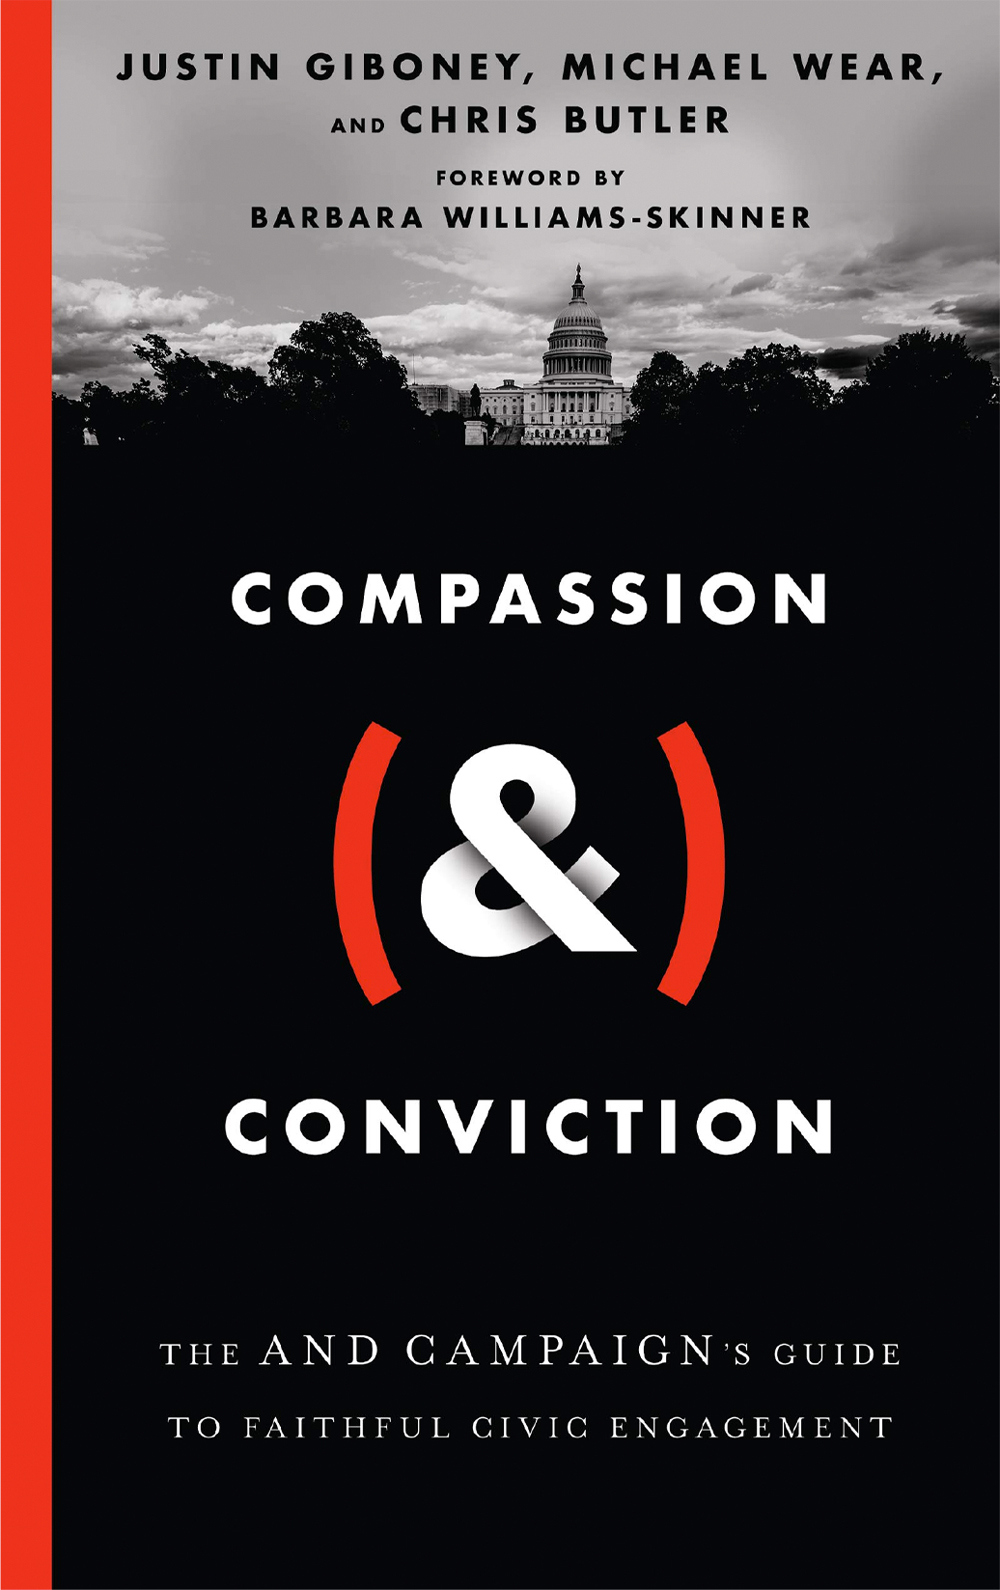 Compassion and conviction cover